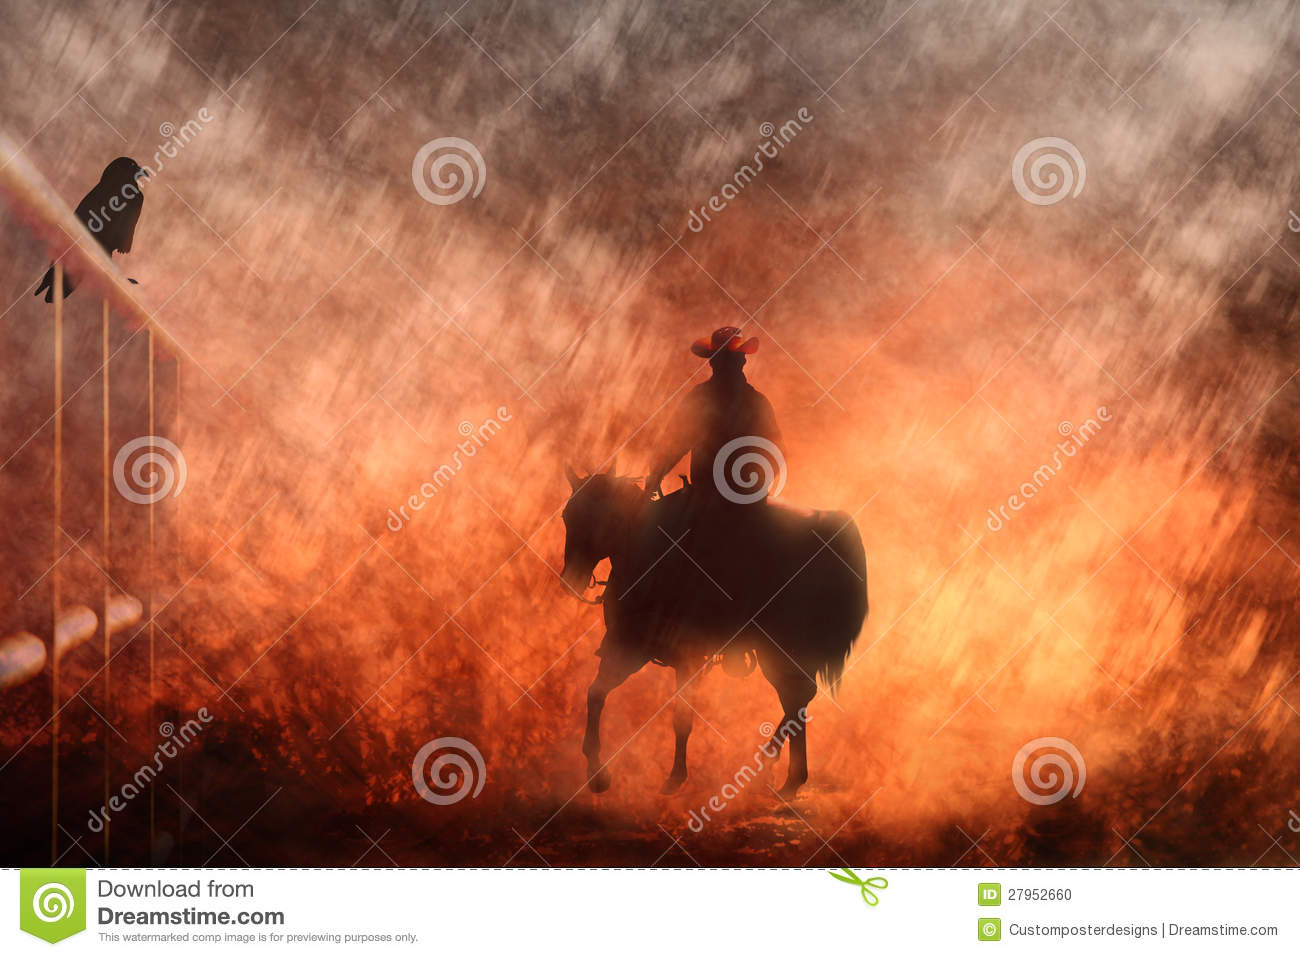 Cowboy riding on a horse III.